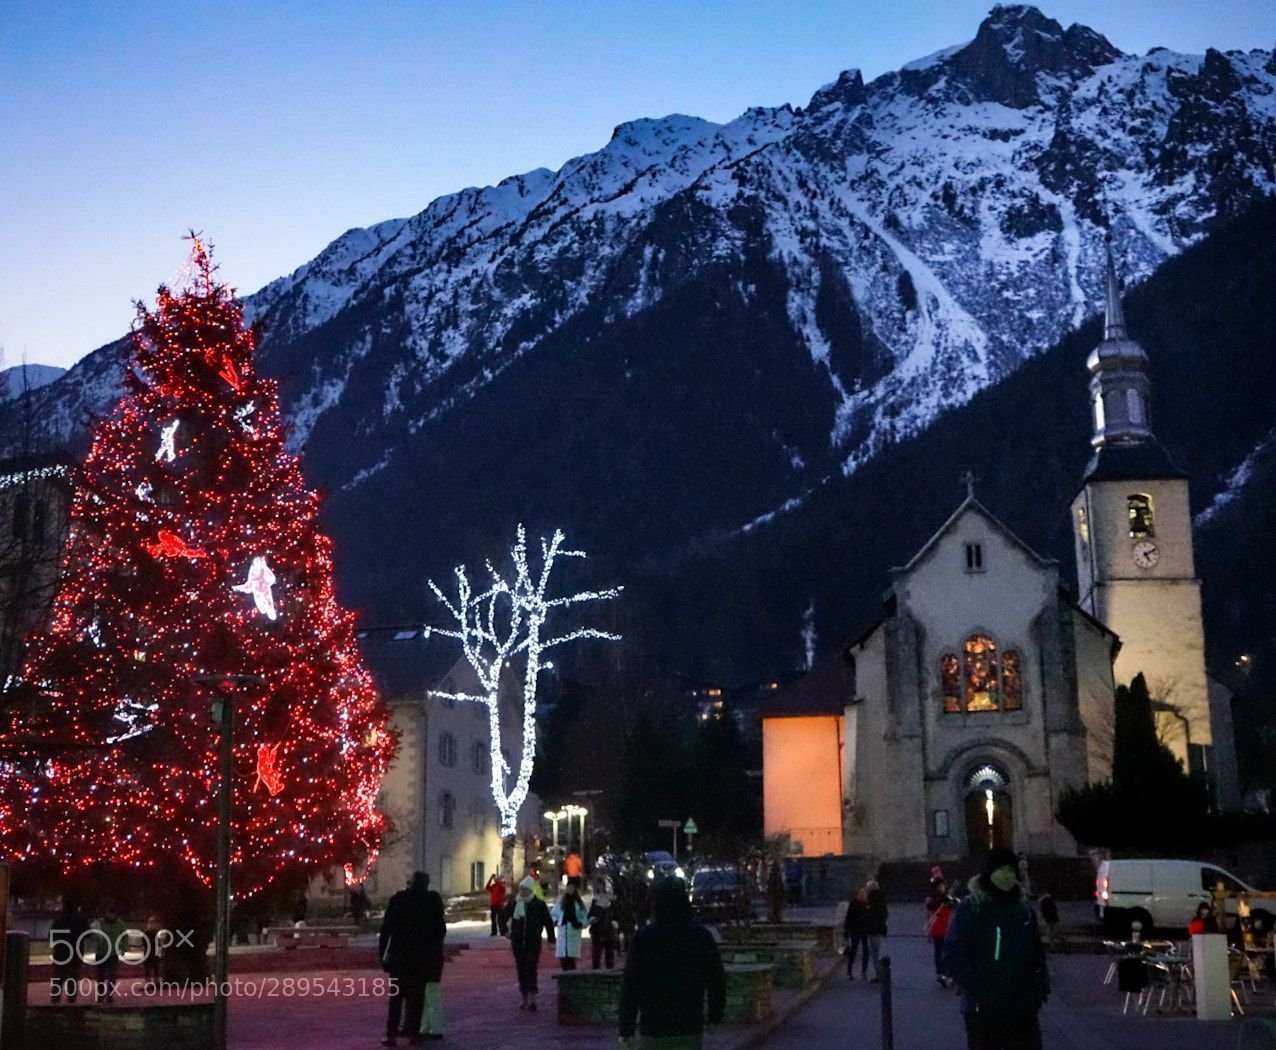 """ The Evening fell"" New year's Evening fell over Chamonix ..."